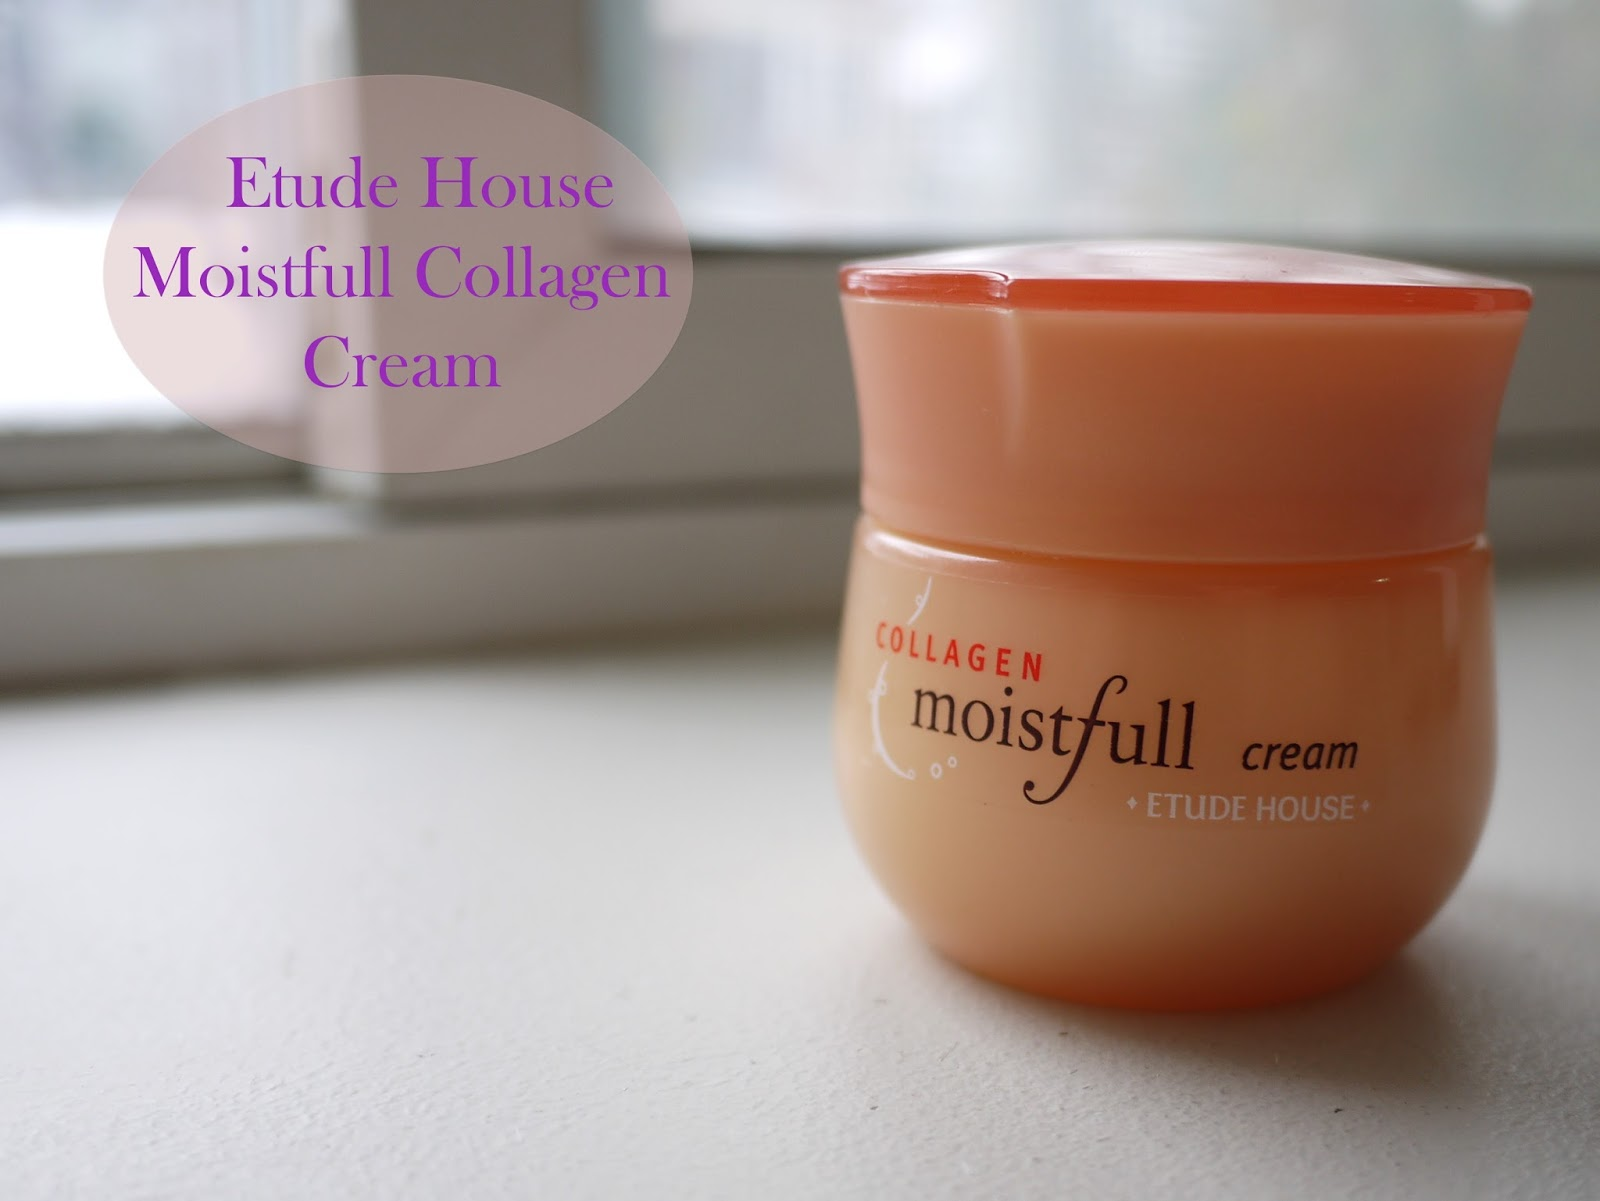 Etude House's Moistfull Collagen Cream review